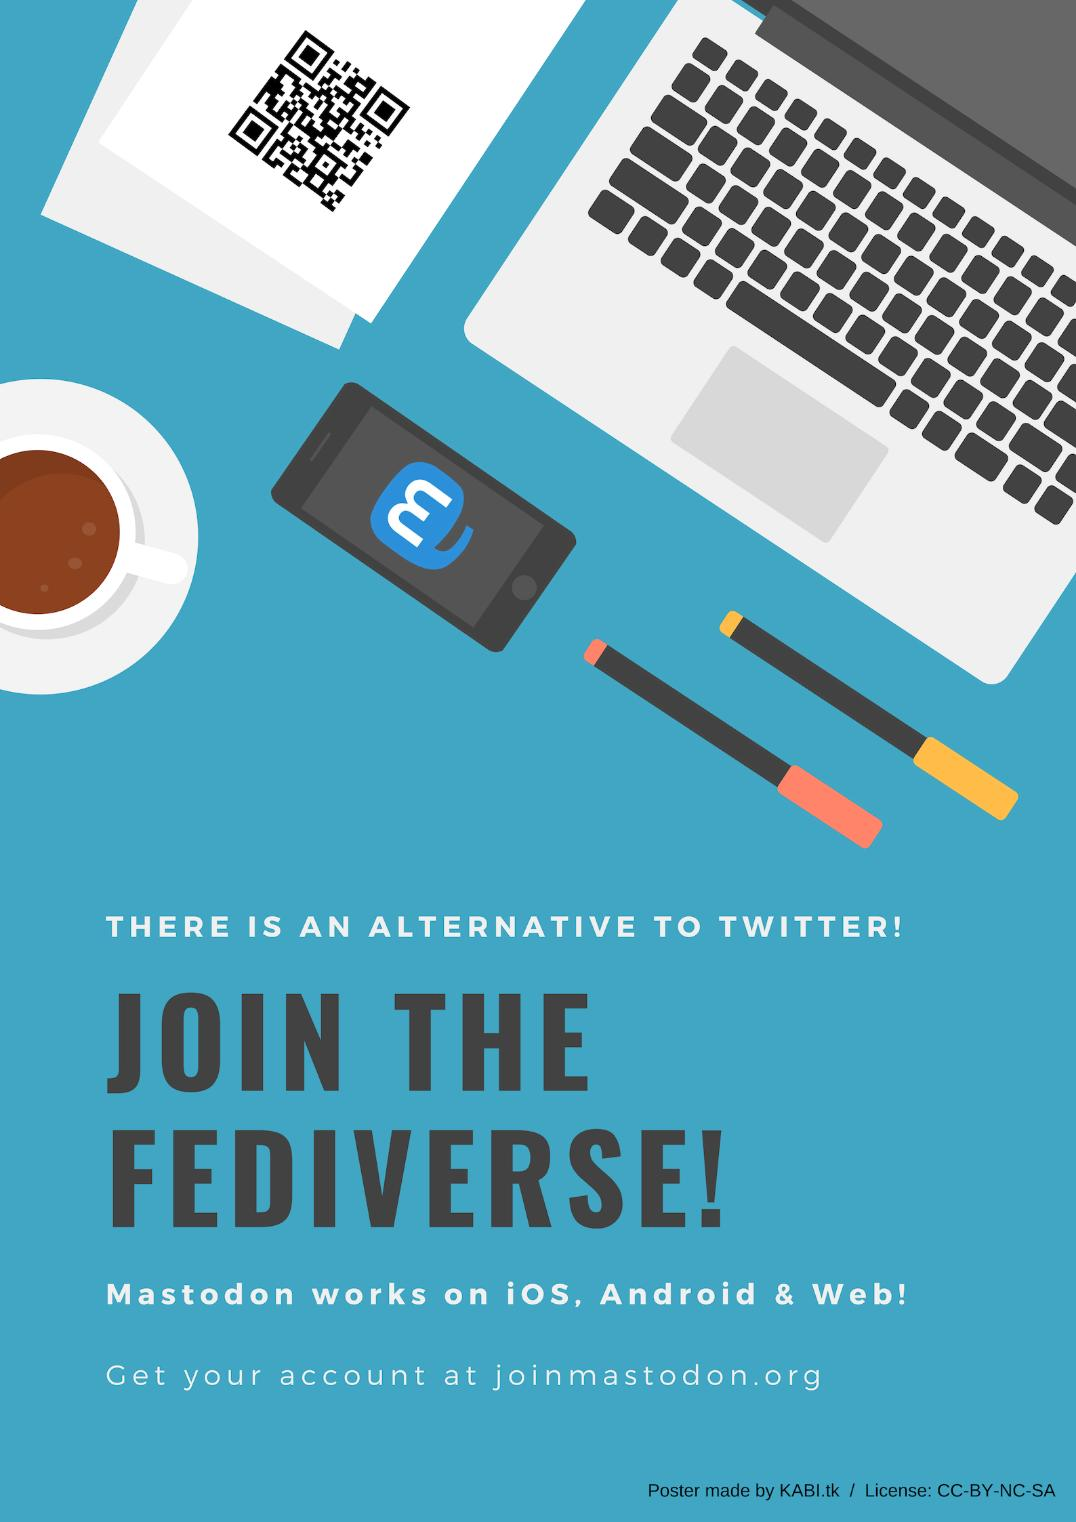 Join the Fediverse